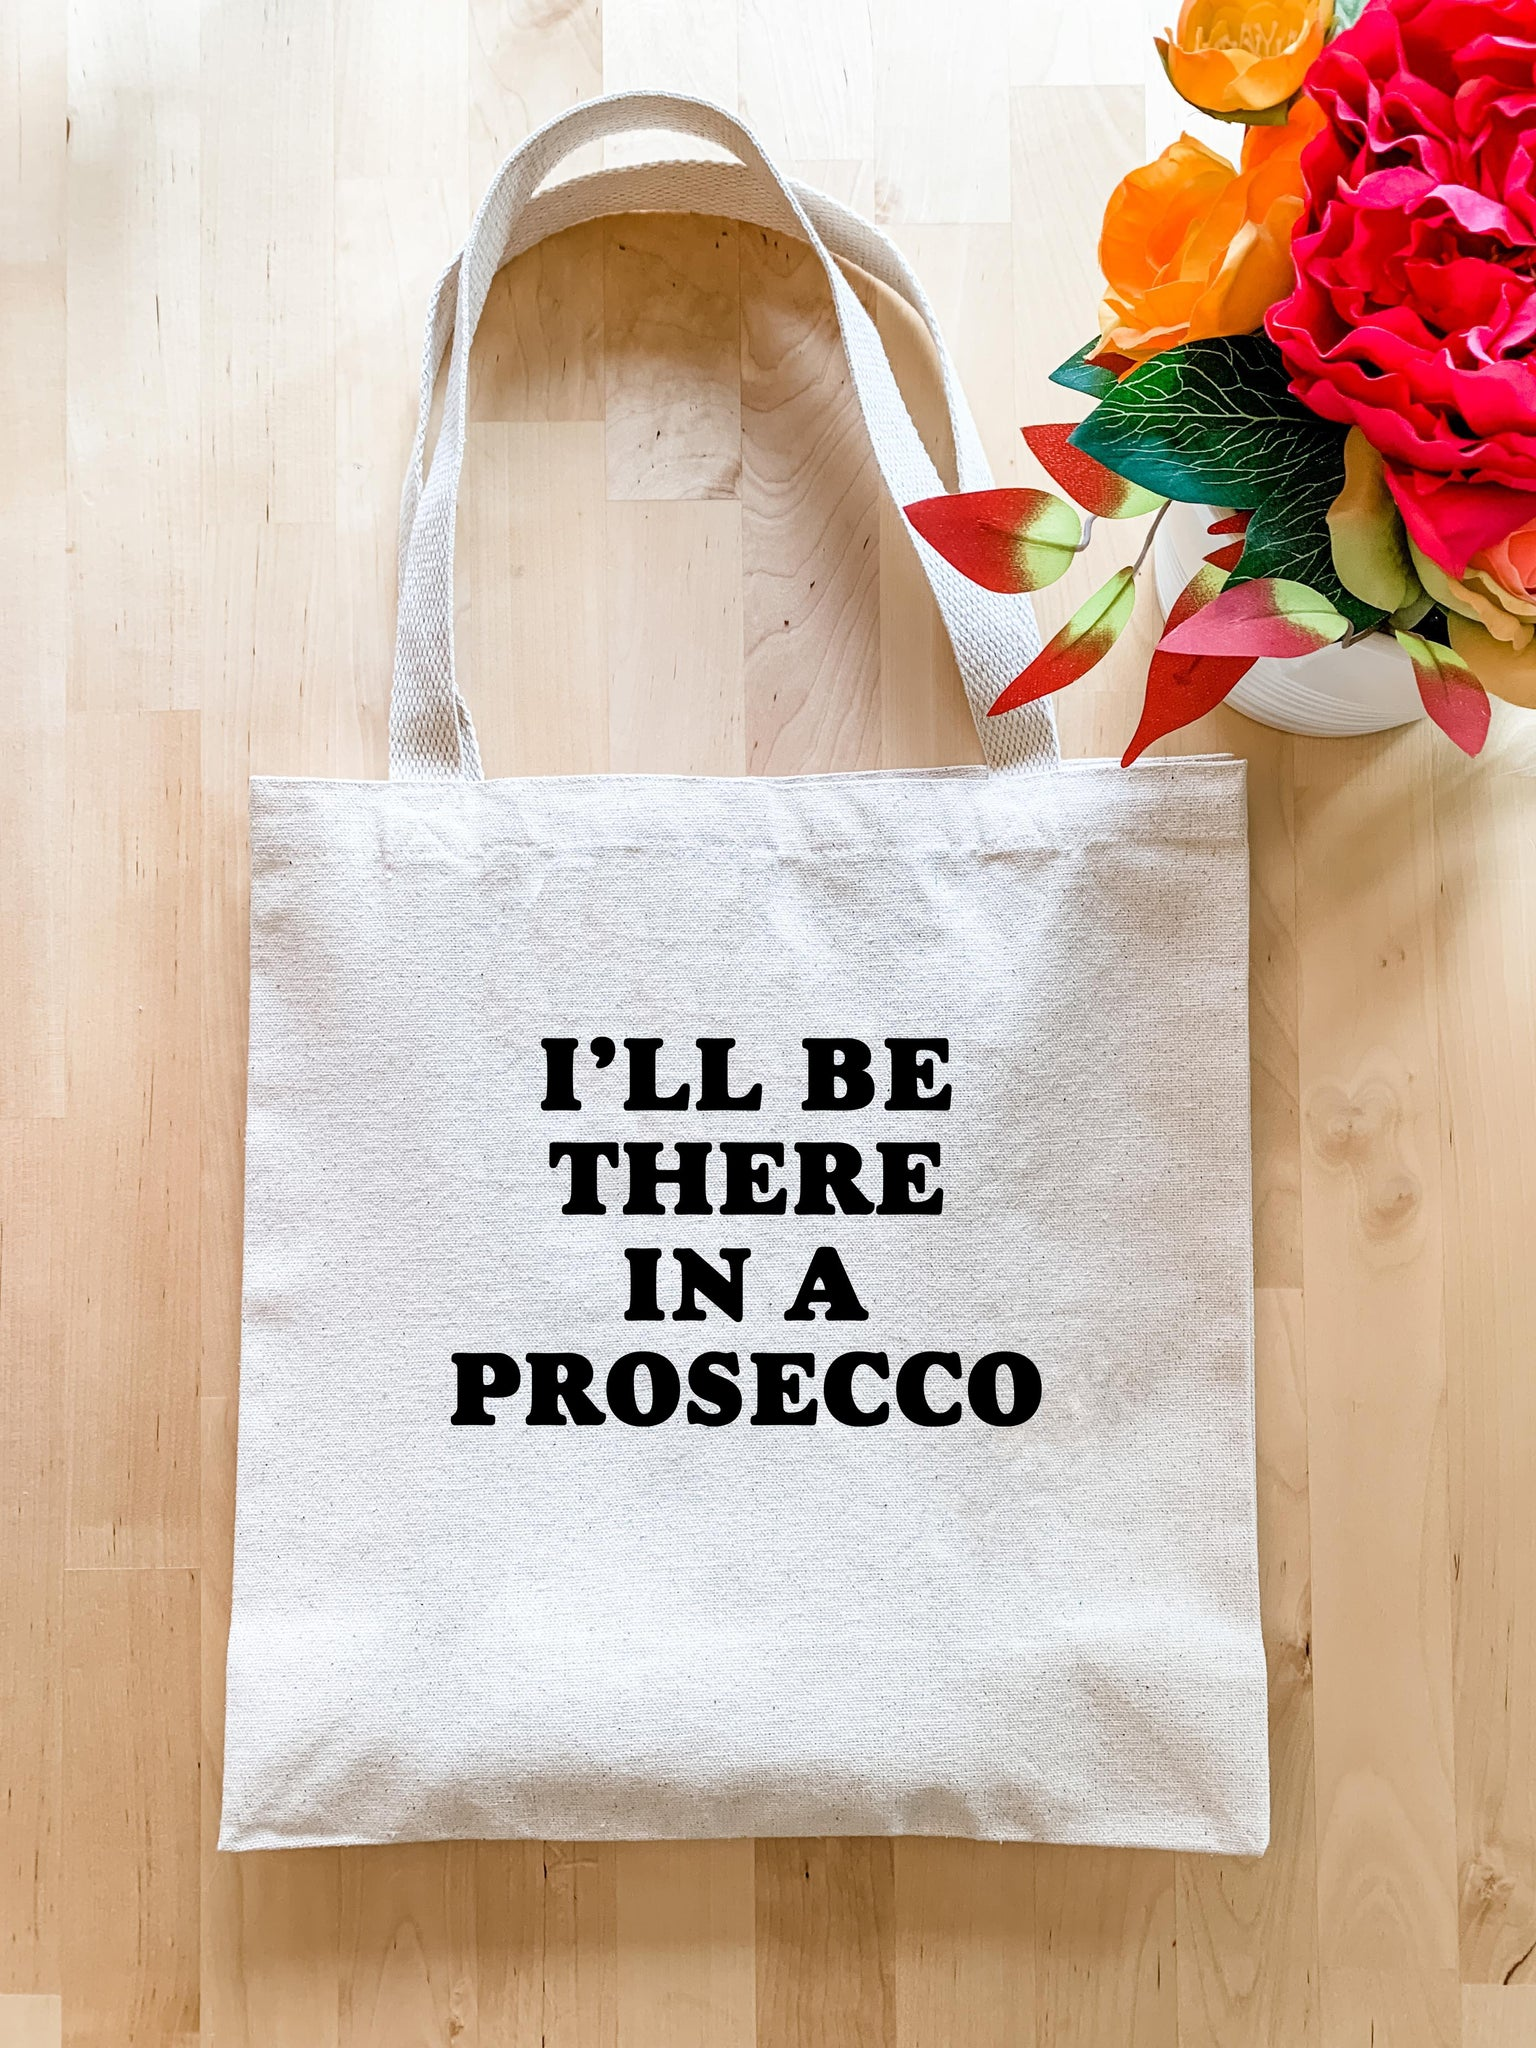 I'll Be There In A Prosecco - Tote Bag - MoonlightMakers